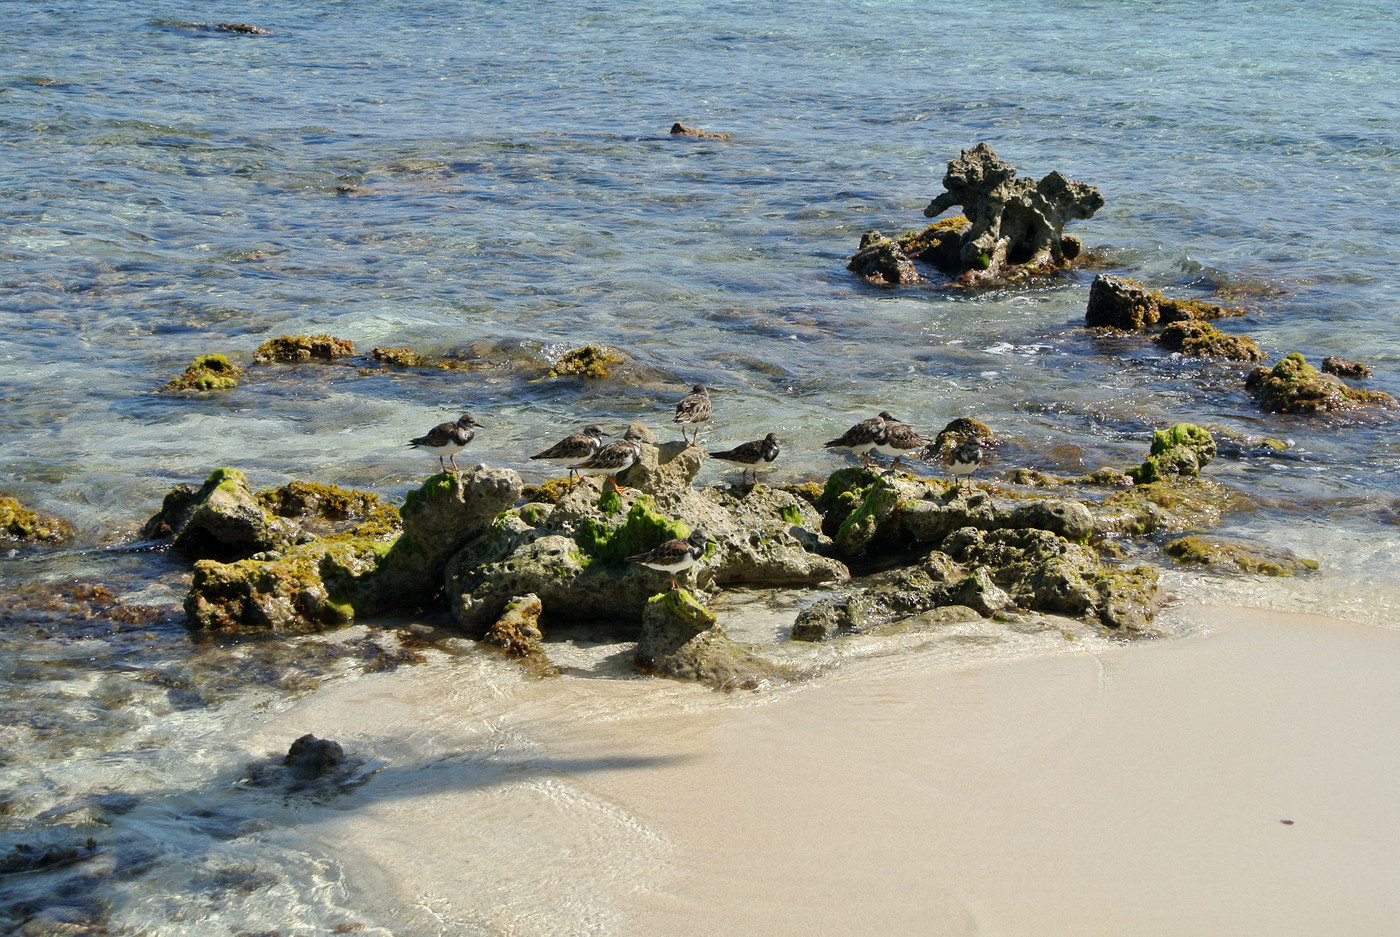 Sandpipers?